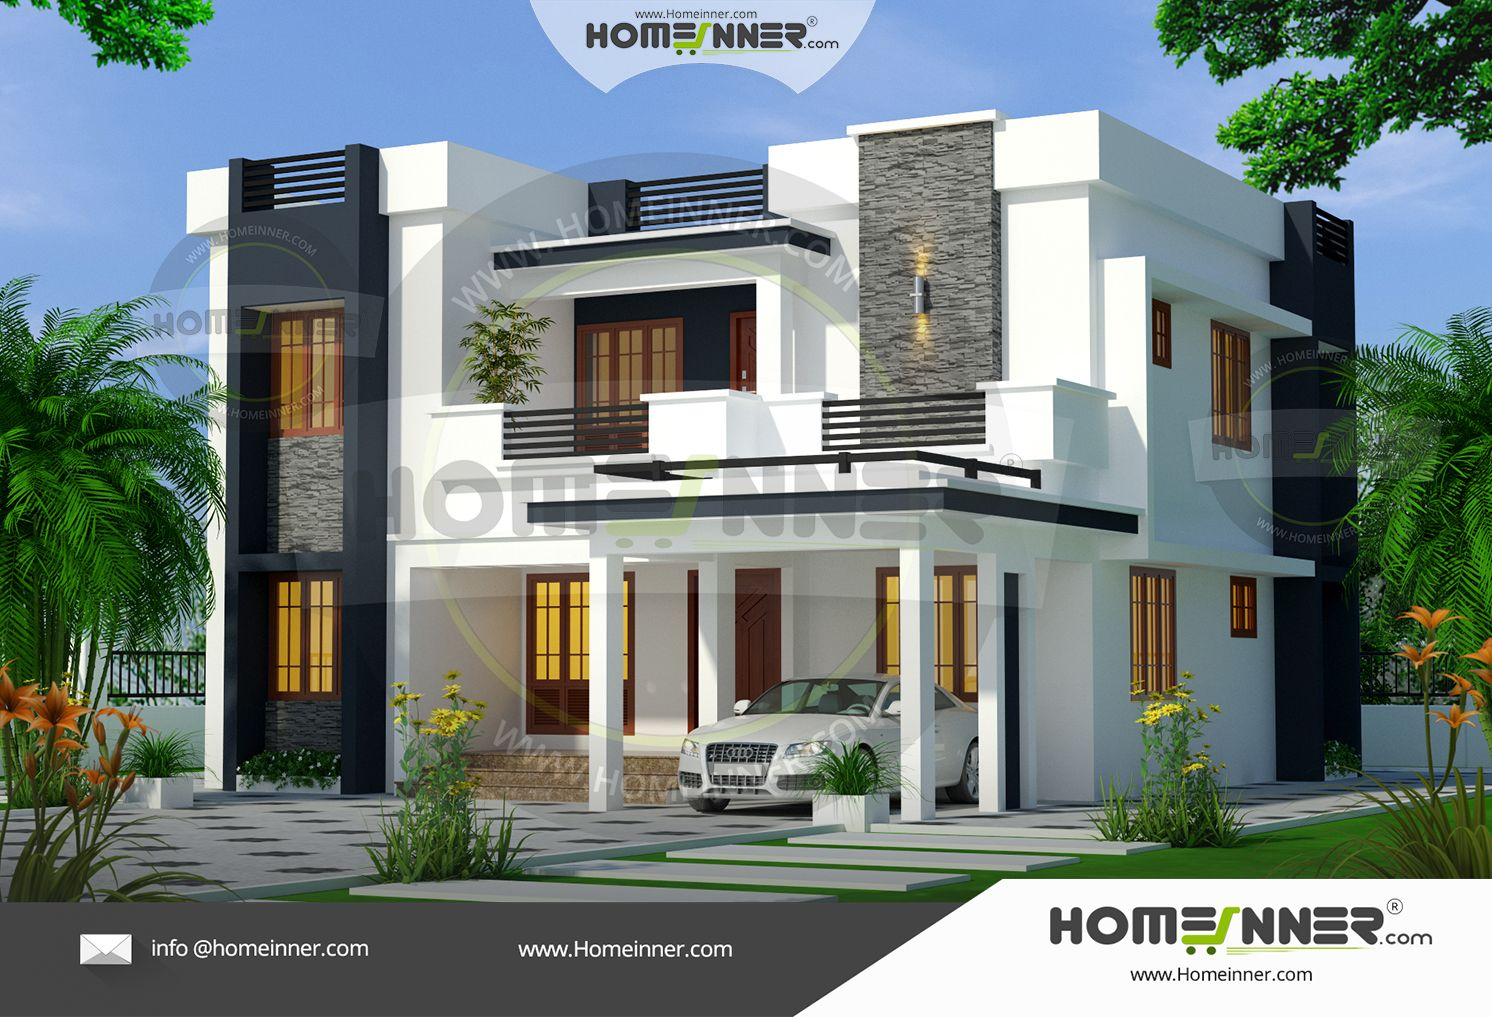 a home design dream house designs 10 uncanny ultramodern homes 4 bedroom contemporary ultra modern house plans 1900 sq ft modern4 bedroom  contemporary ultra modern house